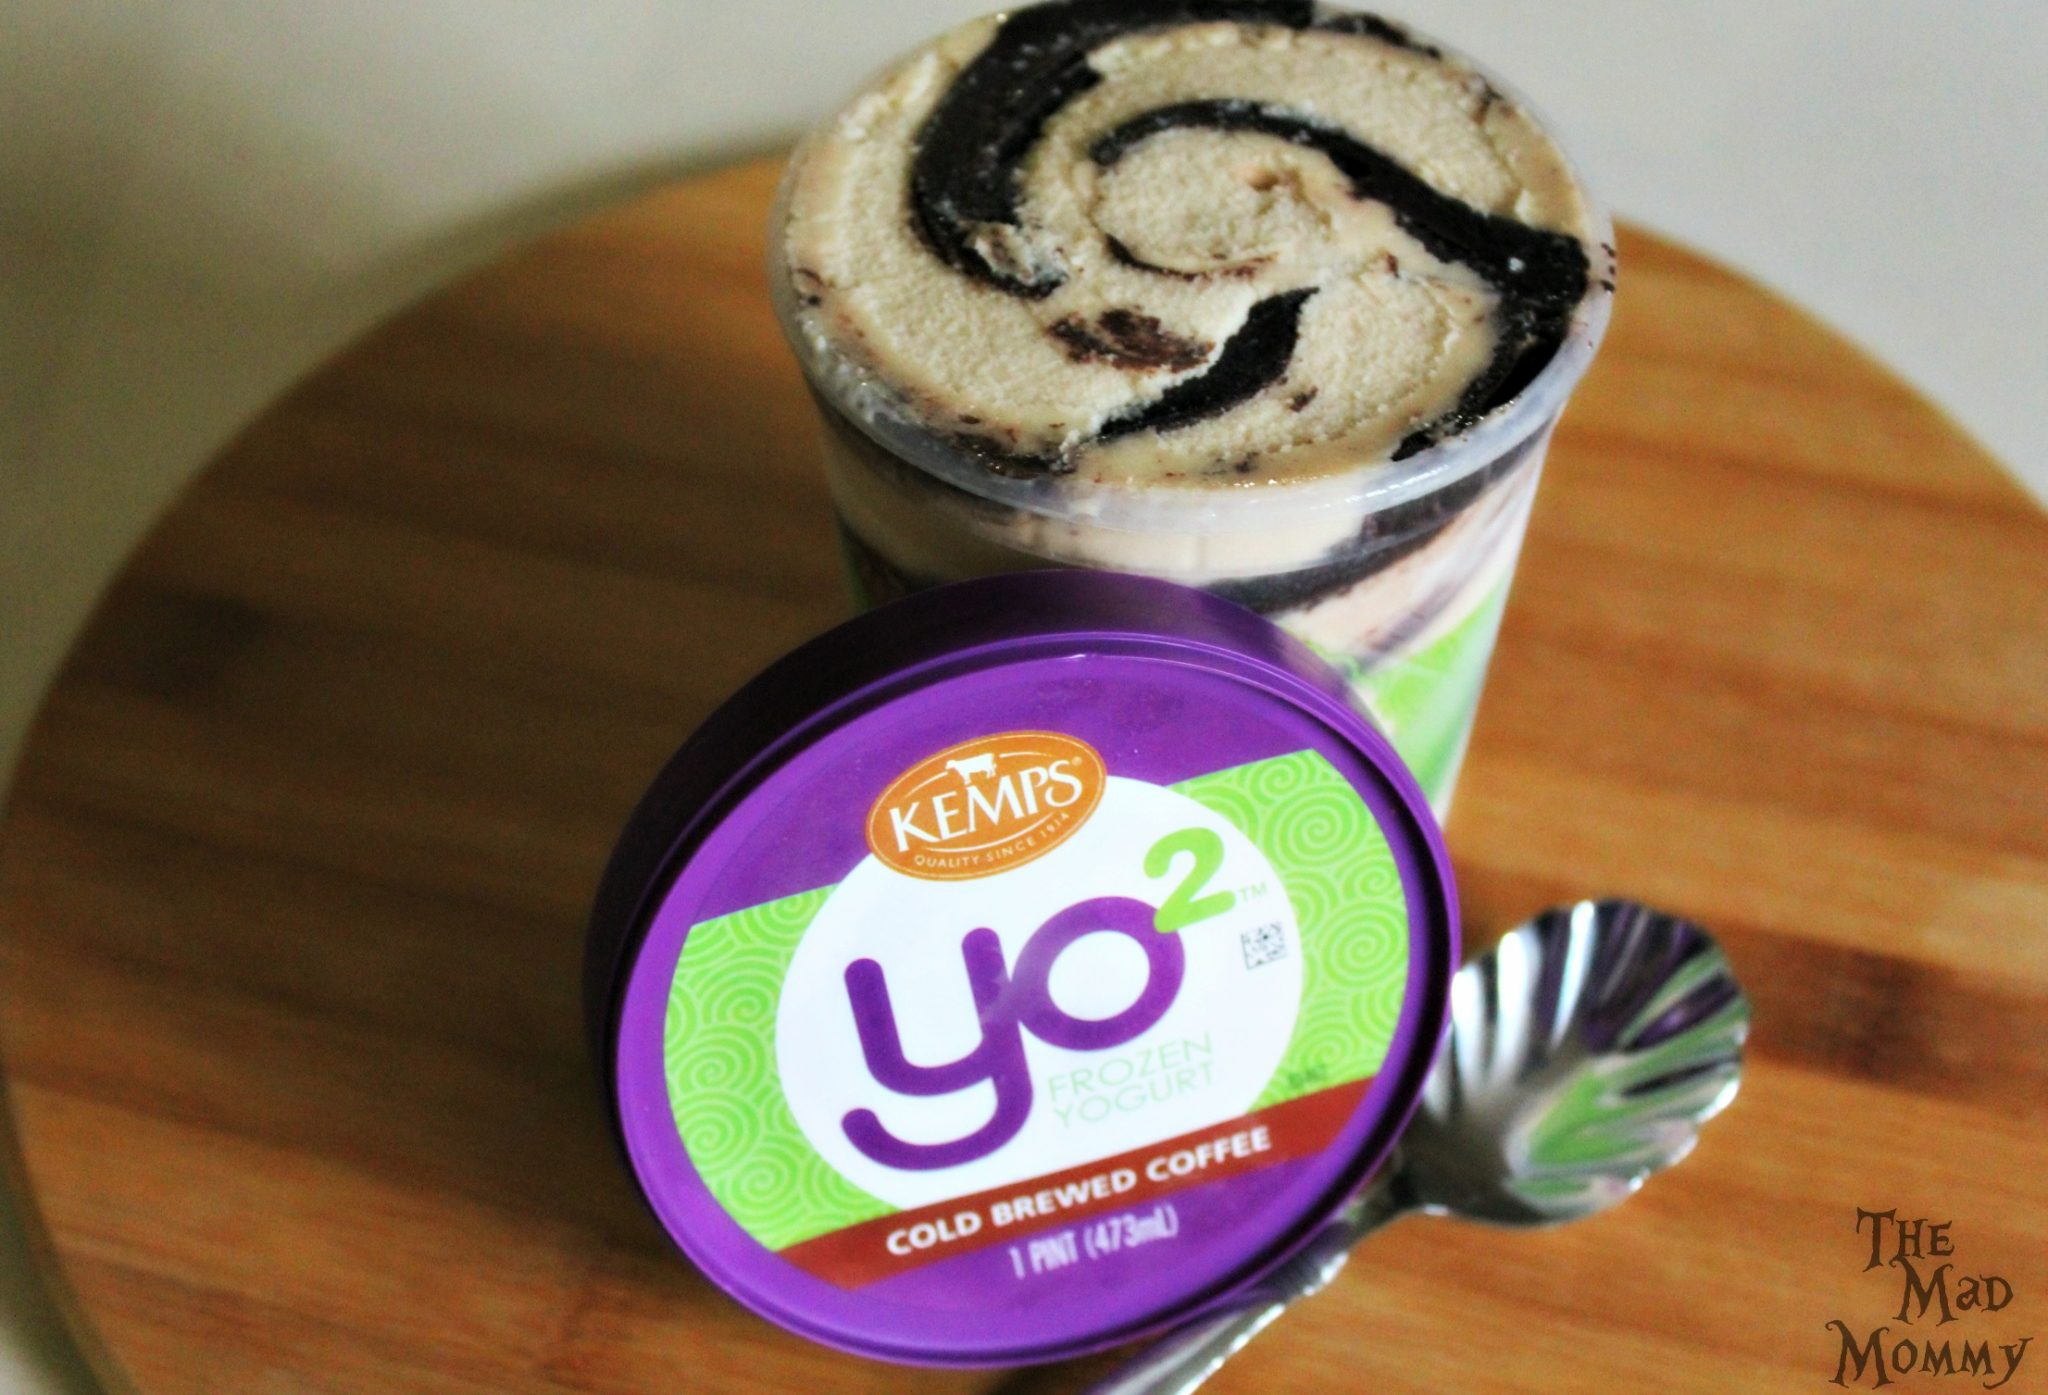 Delicious Kemp's Yo² Frozen Yogurt in Cold Brewed Coffee flavor! #Sponsored #Yo2 #ItsTheCows